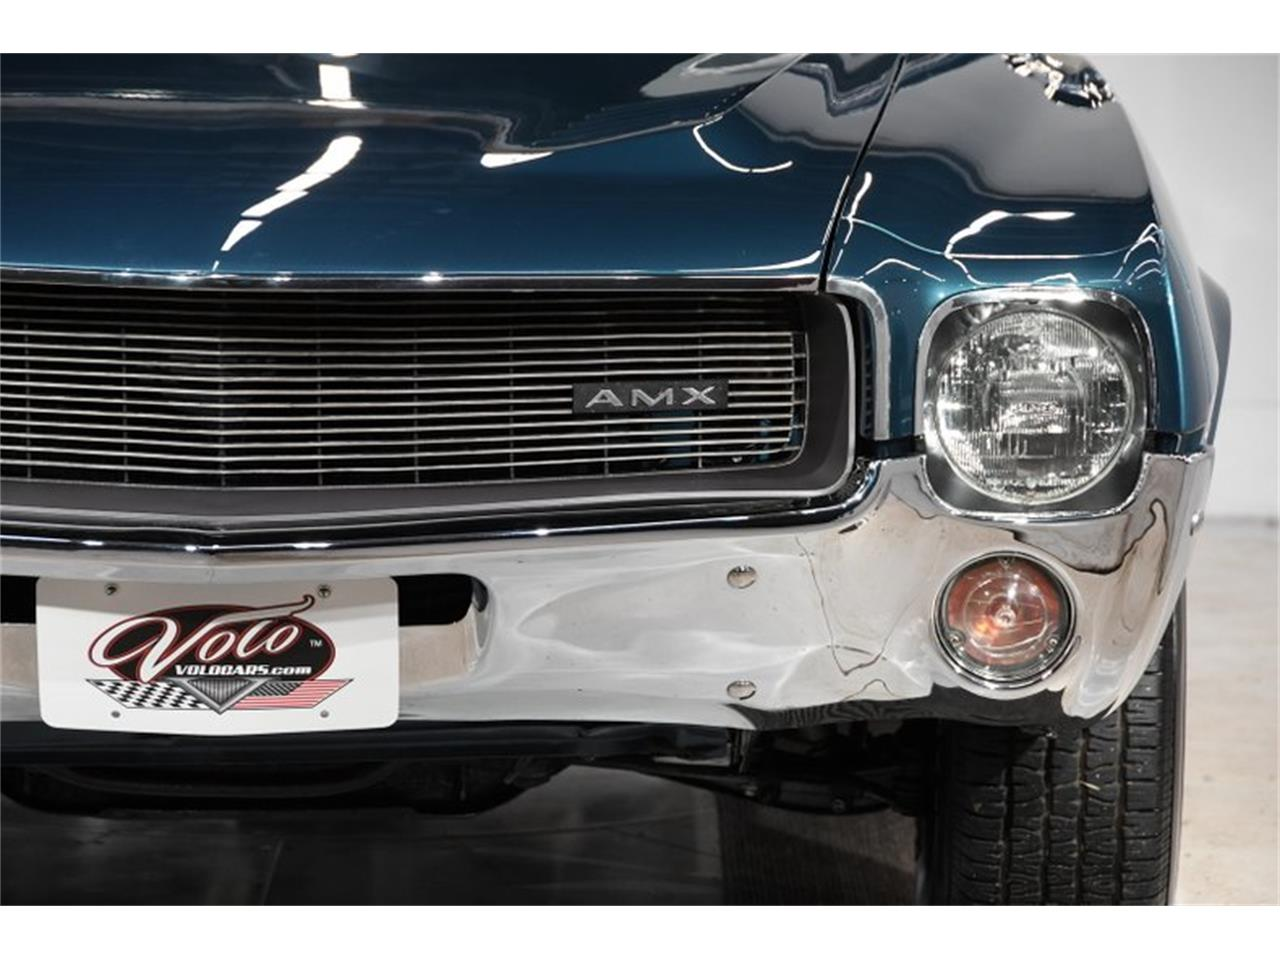 Large Picture of Classic '69 AMX located in Illinois - $38,998.00 - Q2WE